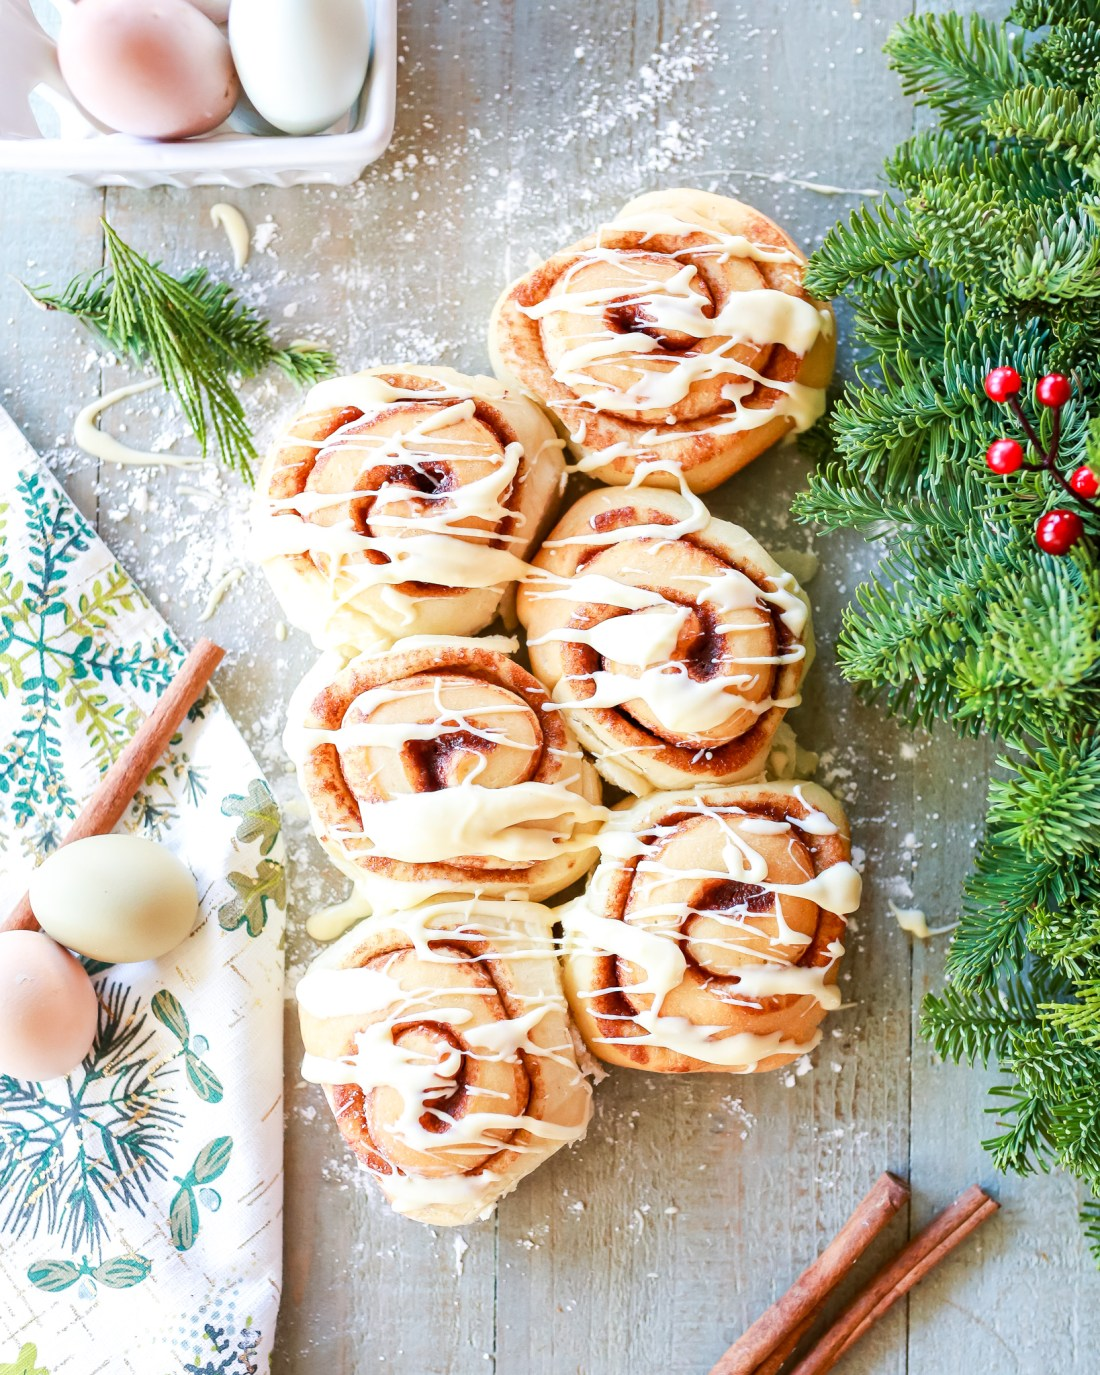 The most incredible cinnamon rolls ever of all time: eggnog cinnamon rolls